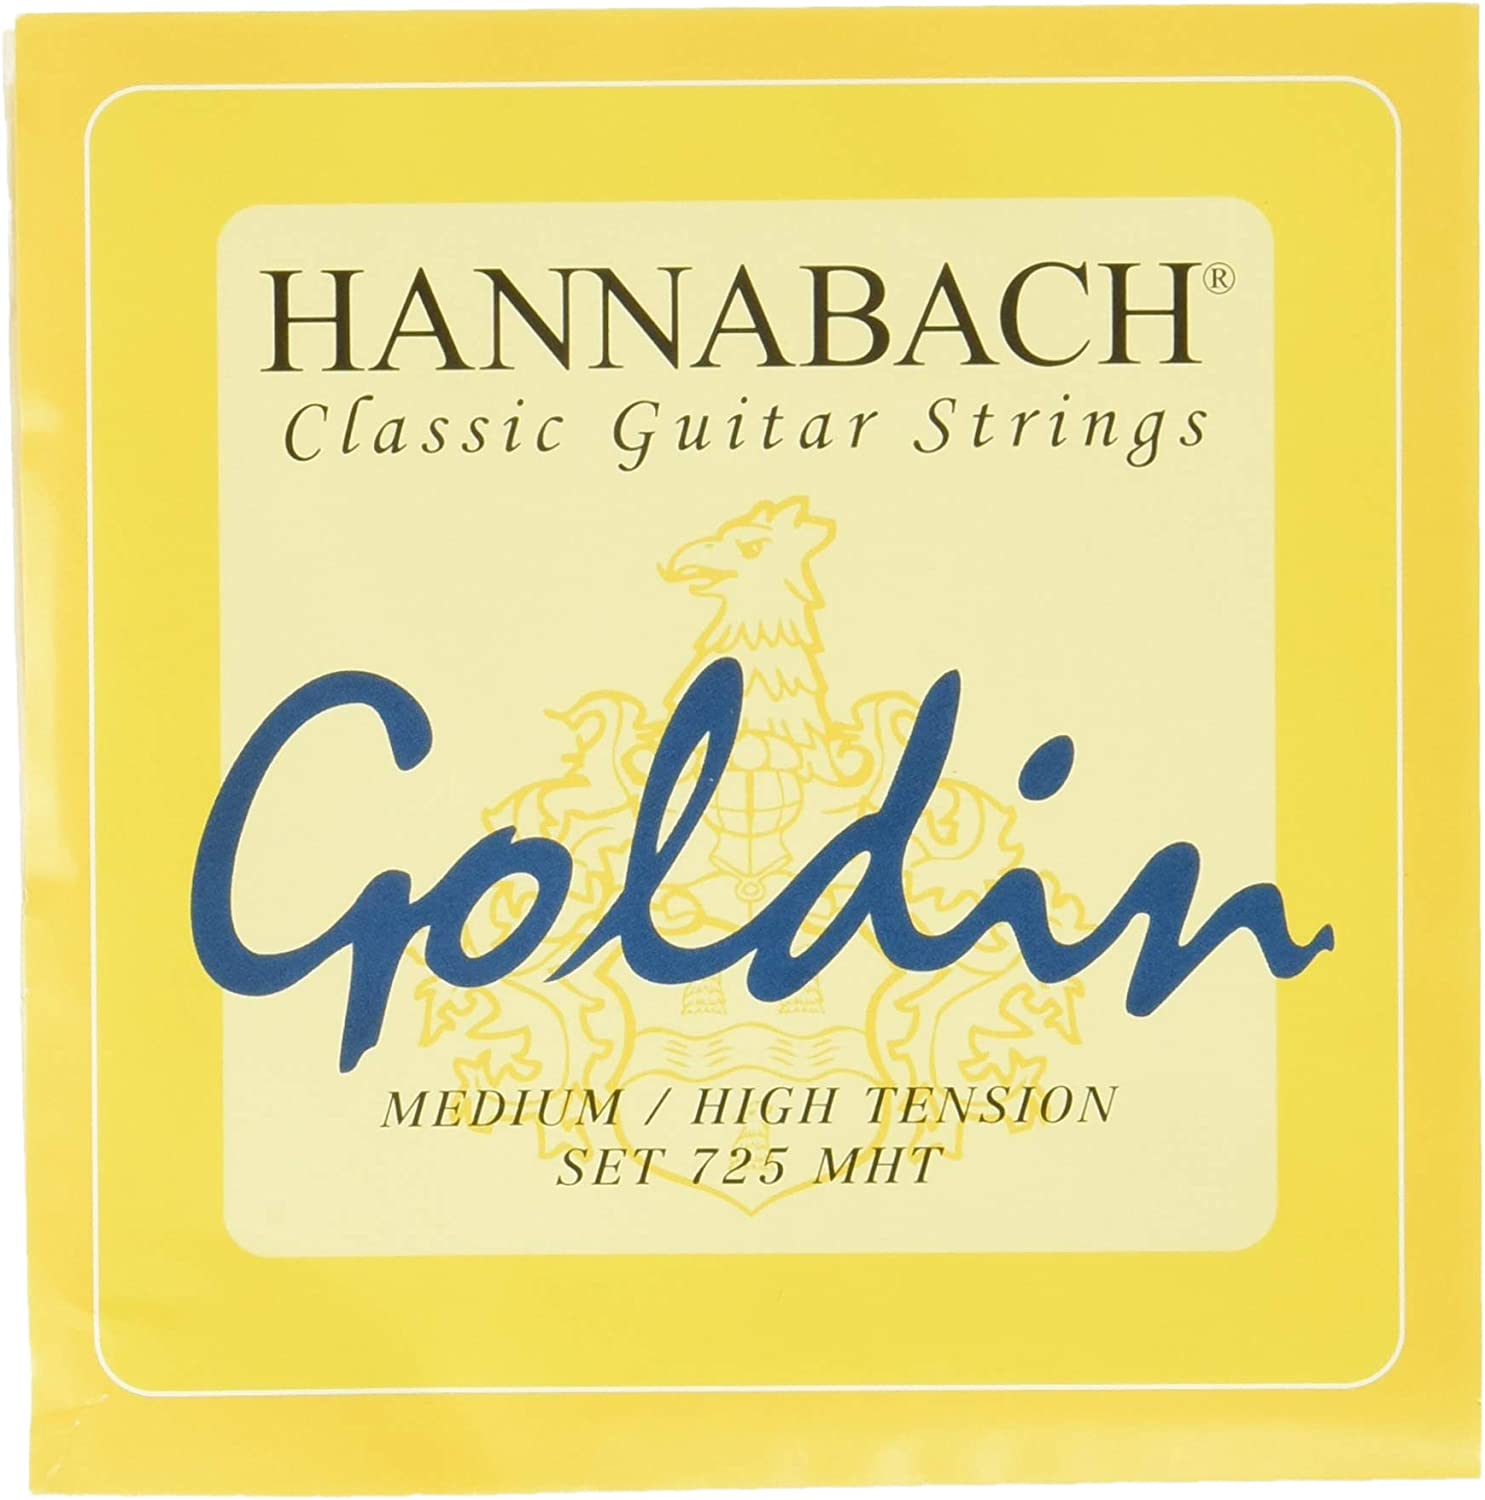 Hannabach 725 MHT GOLDIN outlet Safety and trust Set